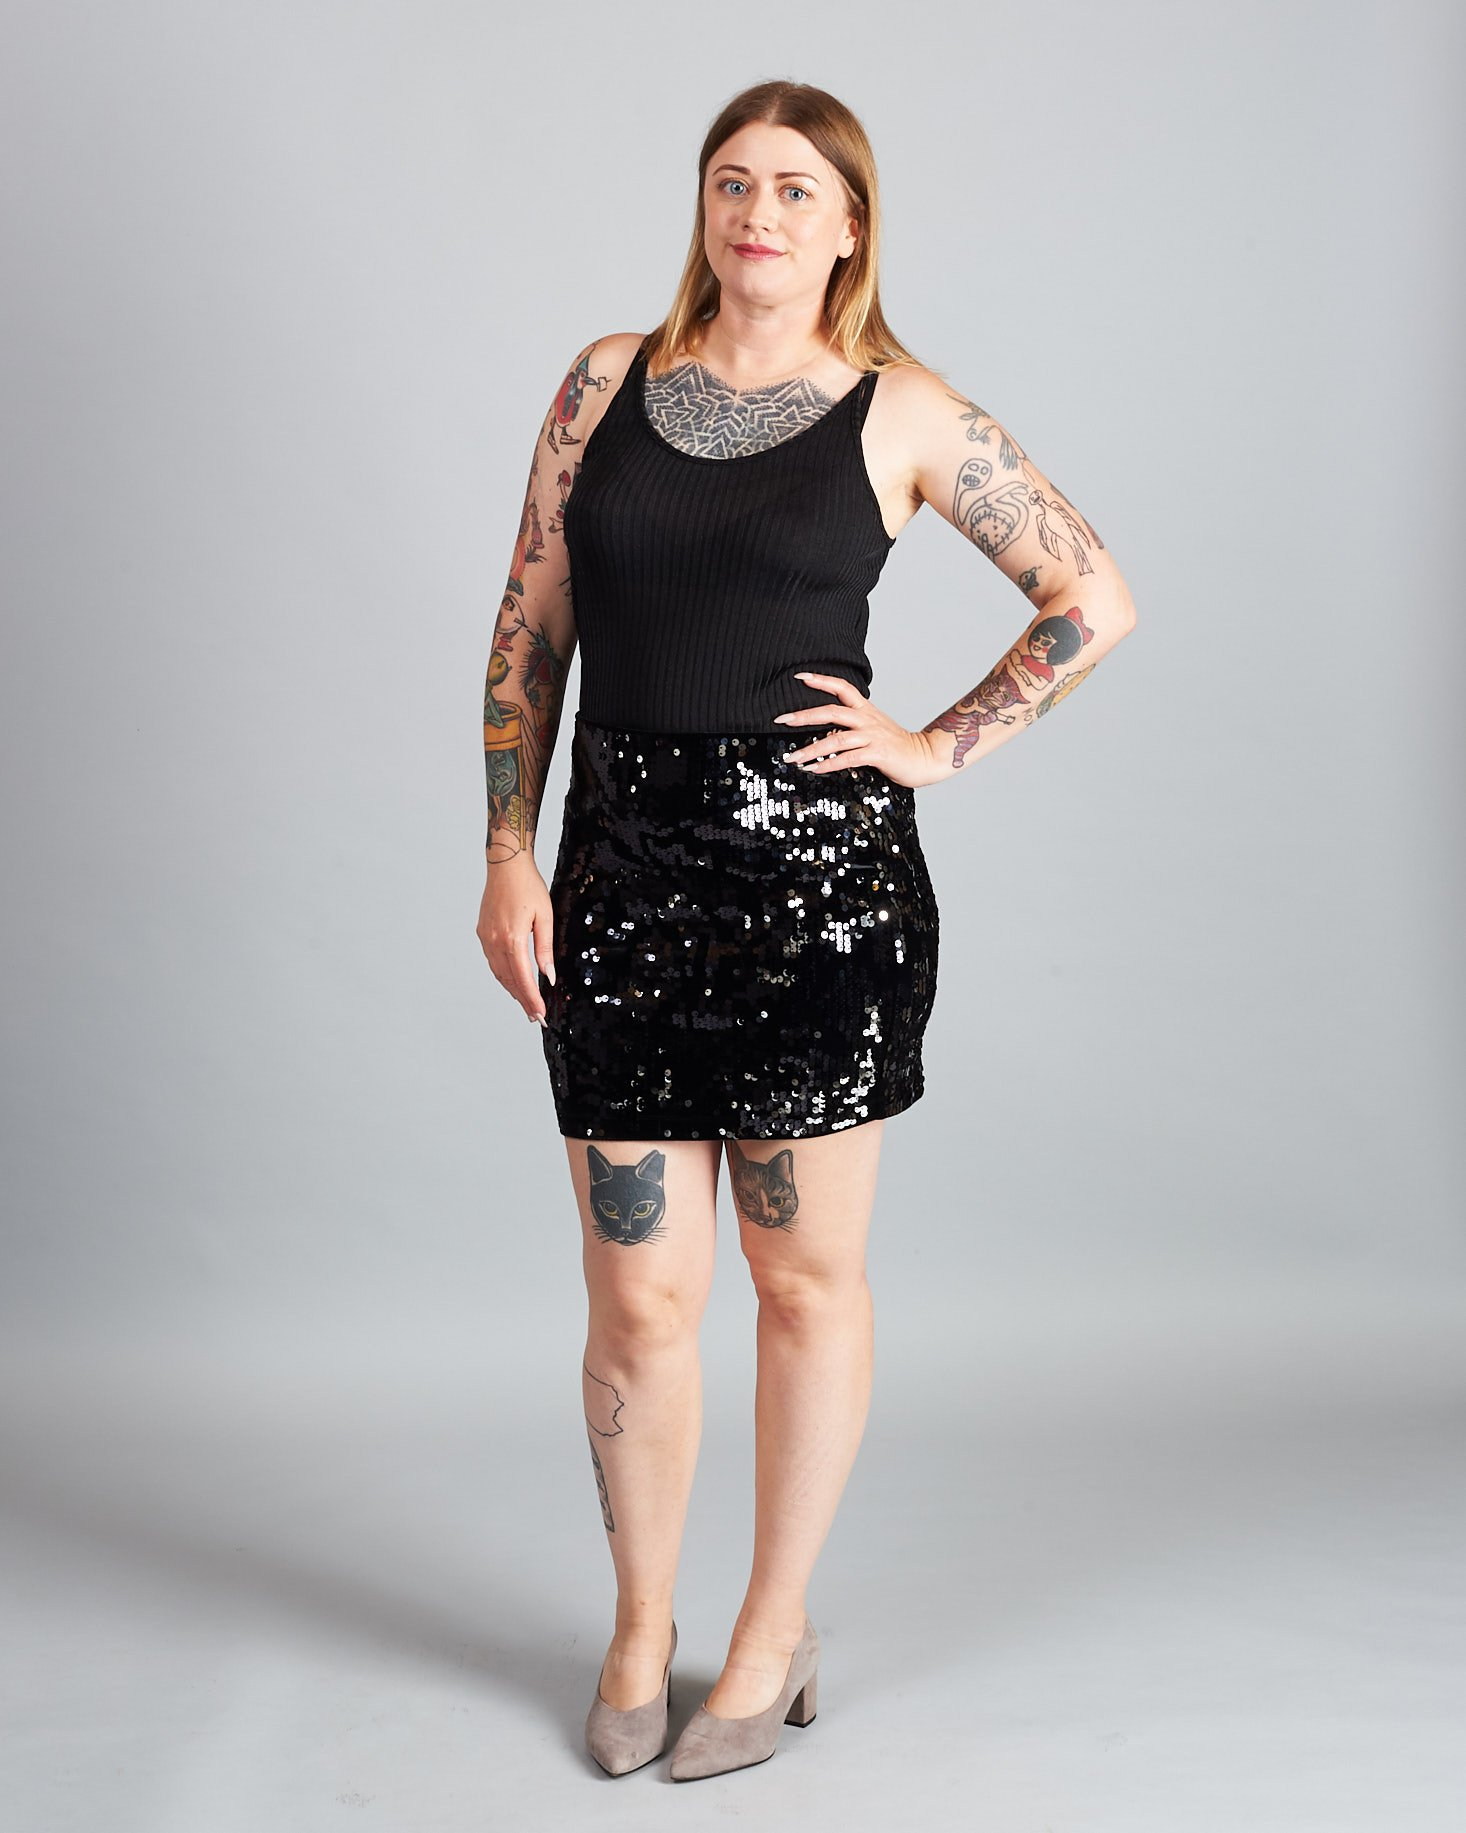 Marne in High Waisted Velvet Sequin Mini Skirt in Black and Fine Ribbed Cami in Black